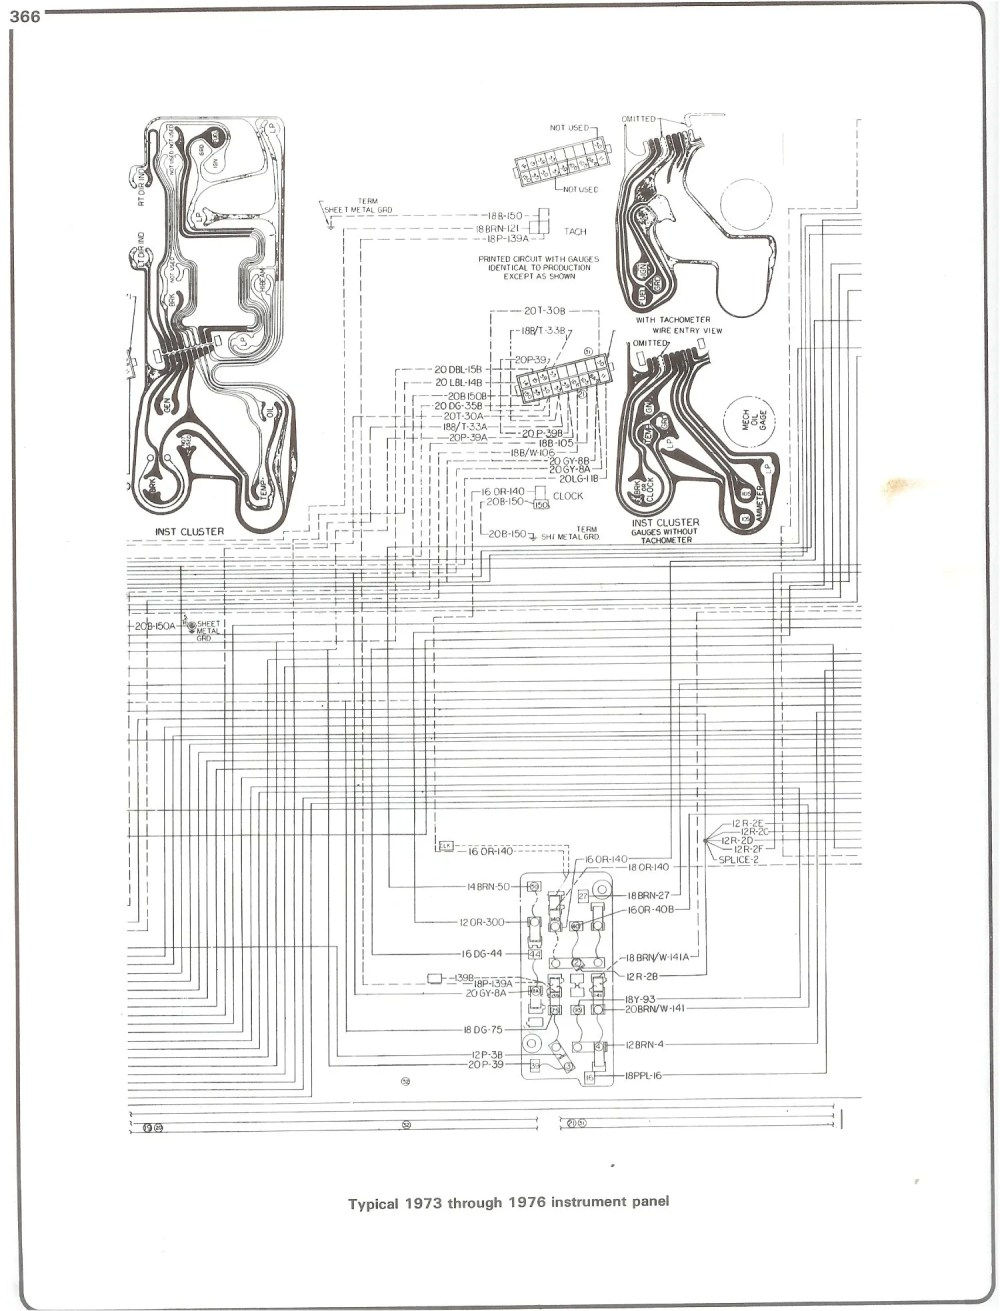 medium resolution of 83 chevy truck wiring diagram wiring diagram user 83 chevy truck wiring diagram